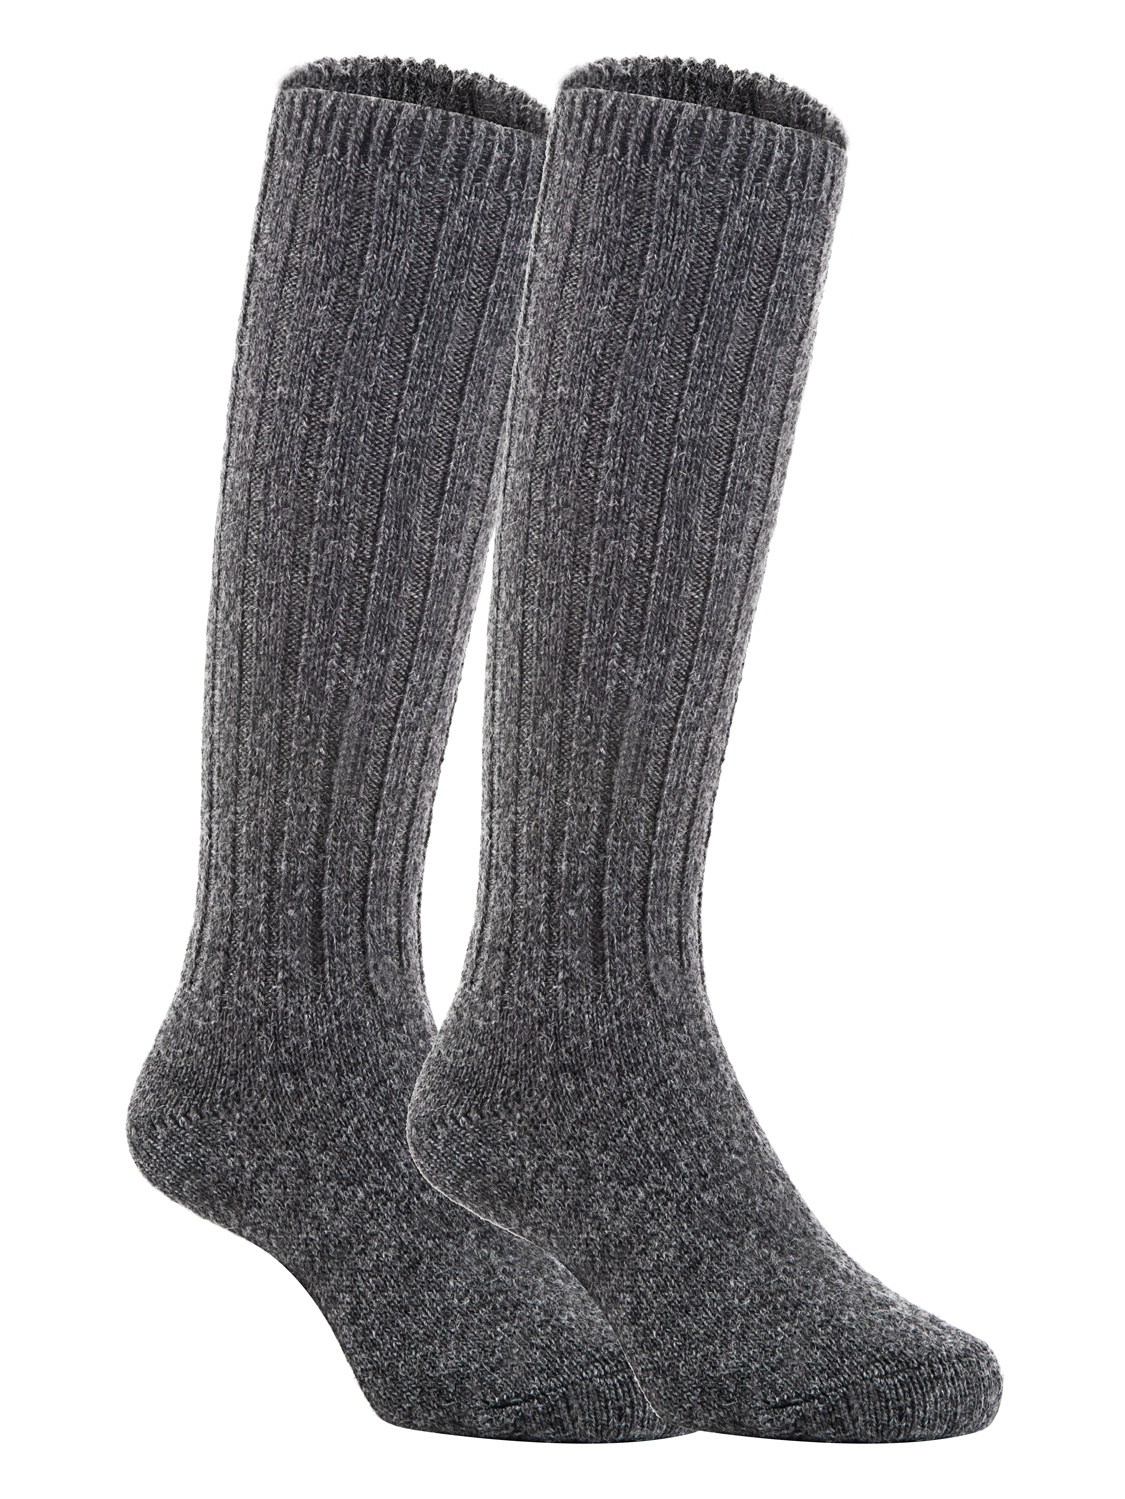 Lian LifeStyle Unisex Baby Children 3 Pairs Knee High Wool Blend Boot Socks Size 2-4Y  (Dark Gray)